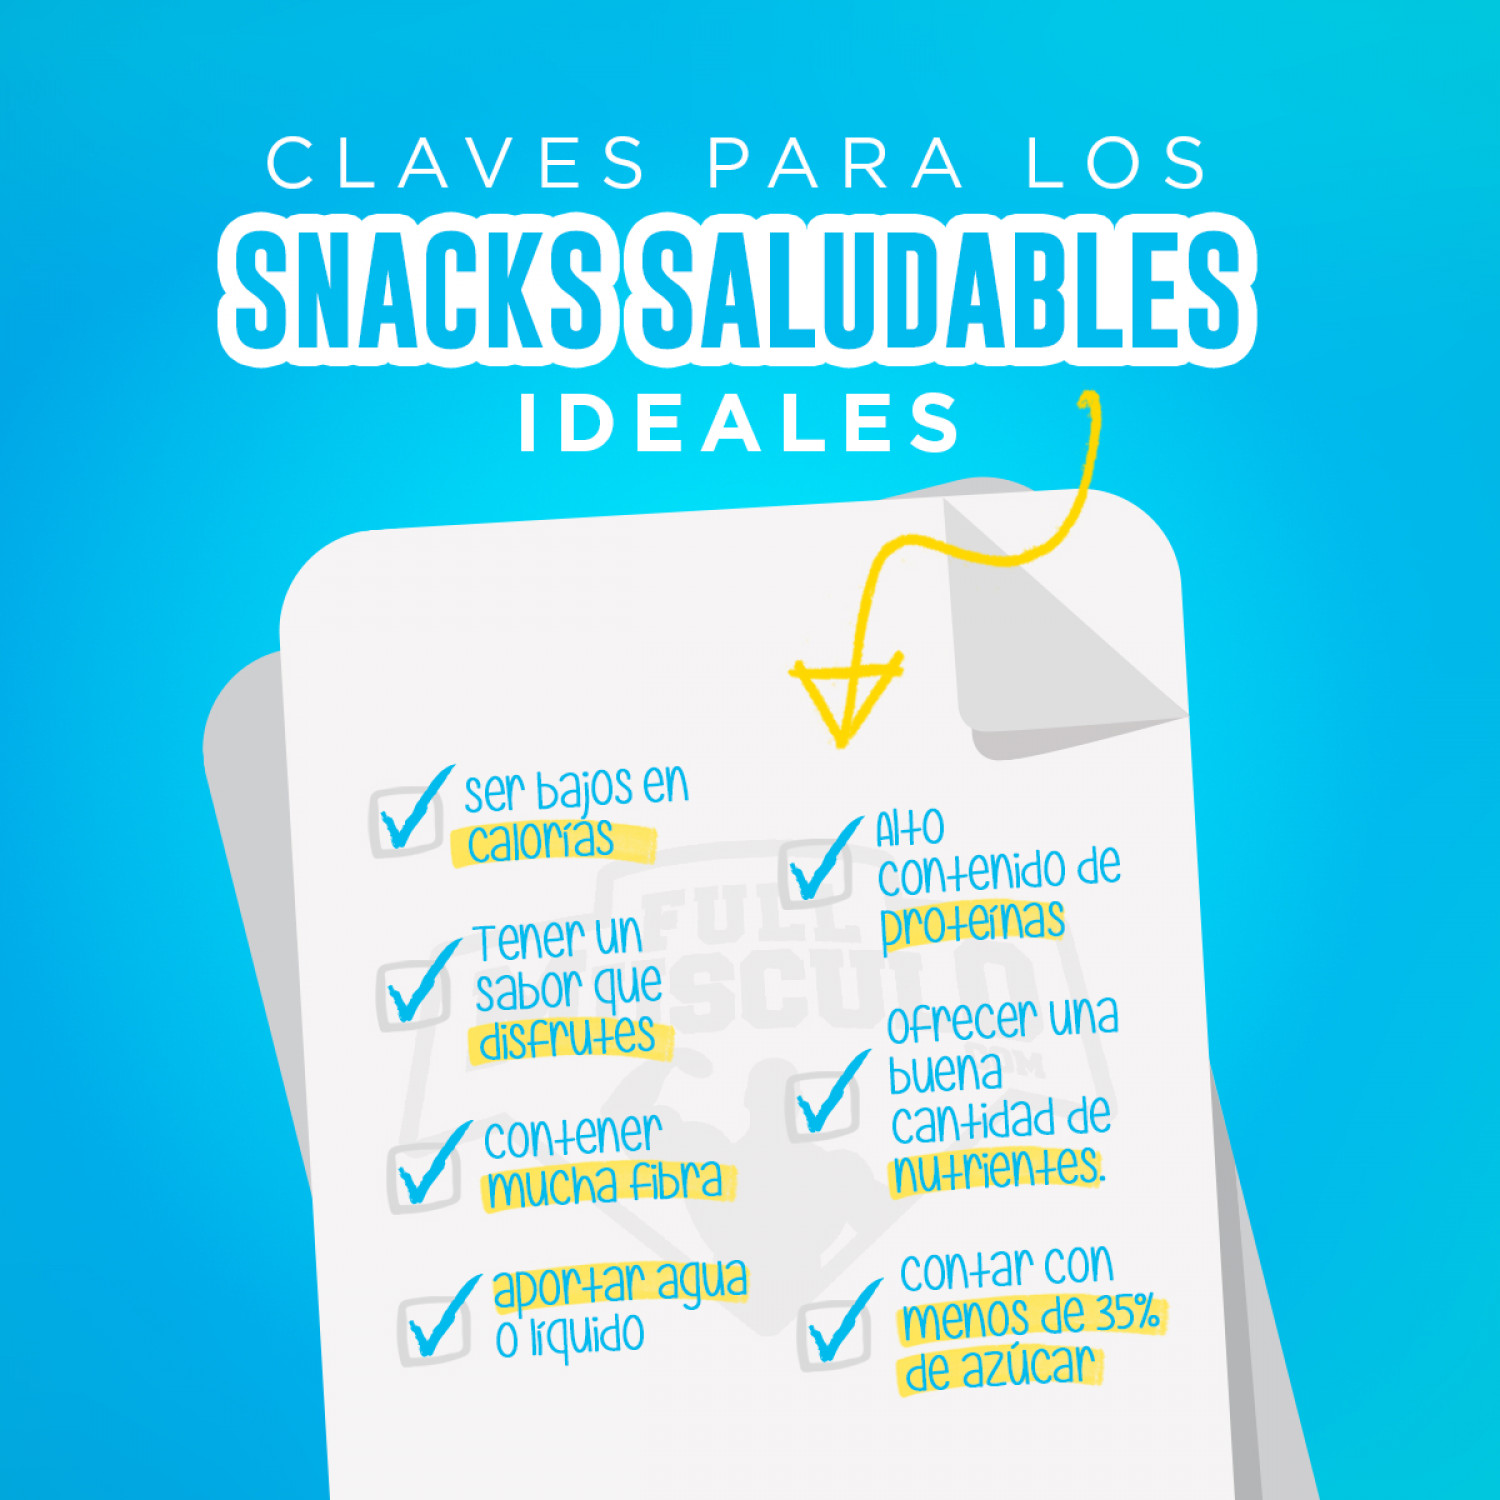 Claves para unos snacks saludables ideales Infographic